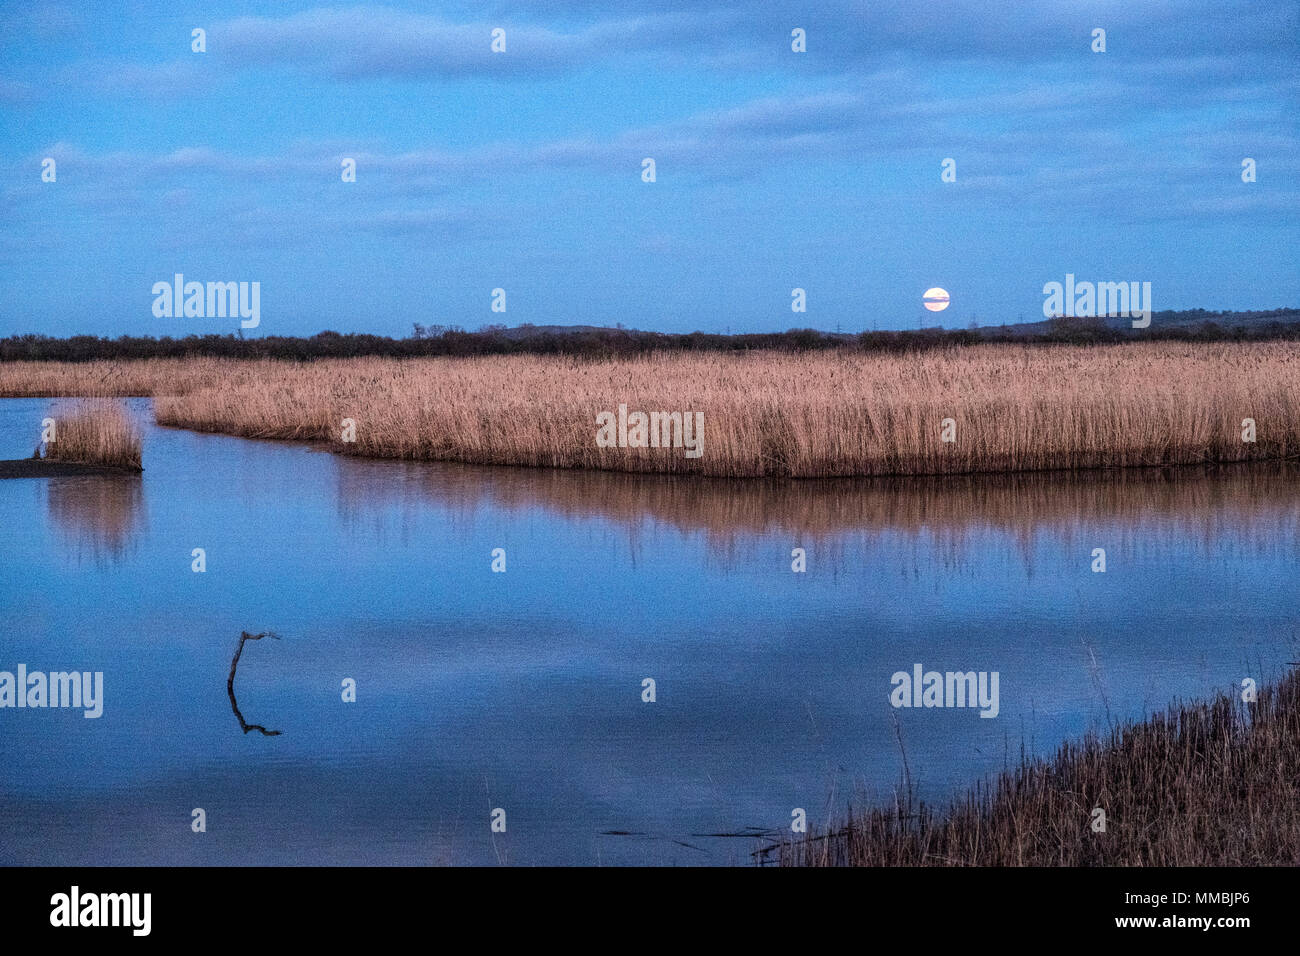 A full moon and water pool in a wetlands nature reserve, with reflections on the water surface of a large flock of birds in the air, a murmuration - Stock Image